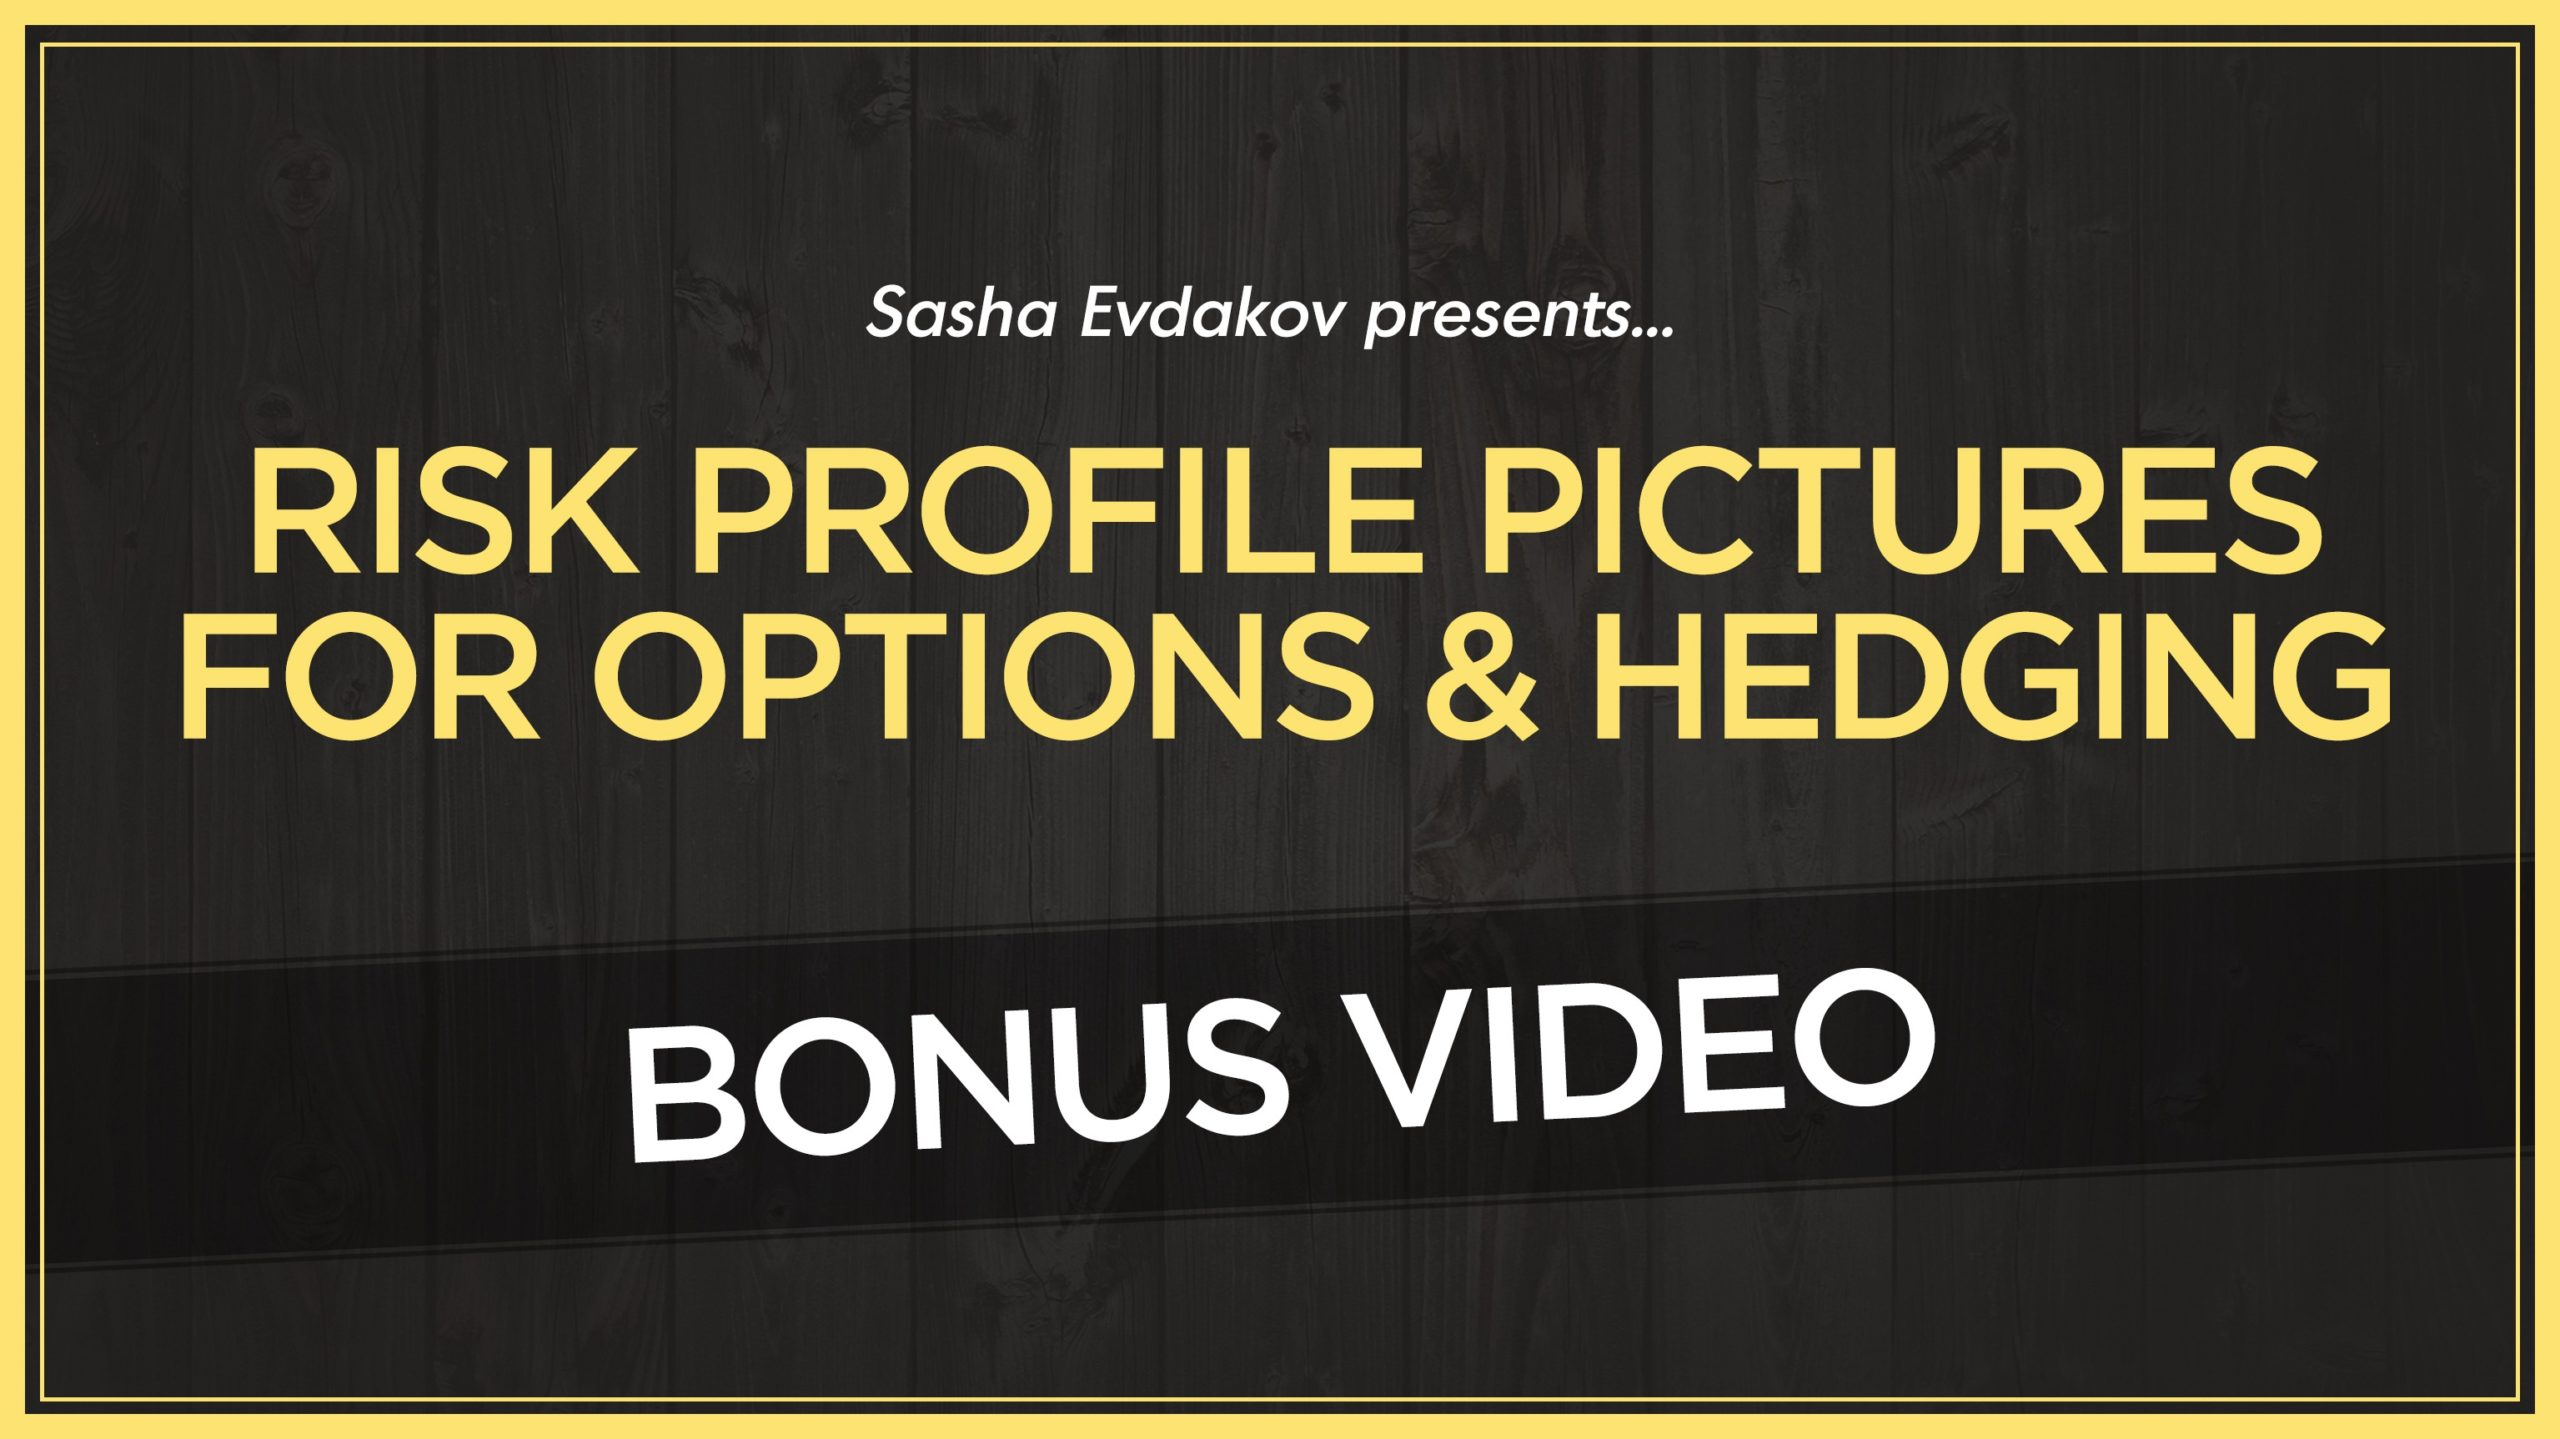 Risk Profile Pictures for Options & Hedging Bonus Video Thumbnail